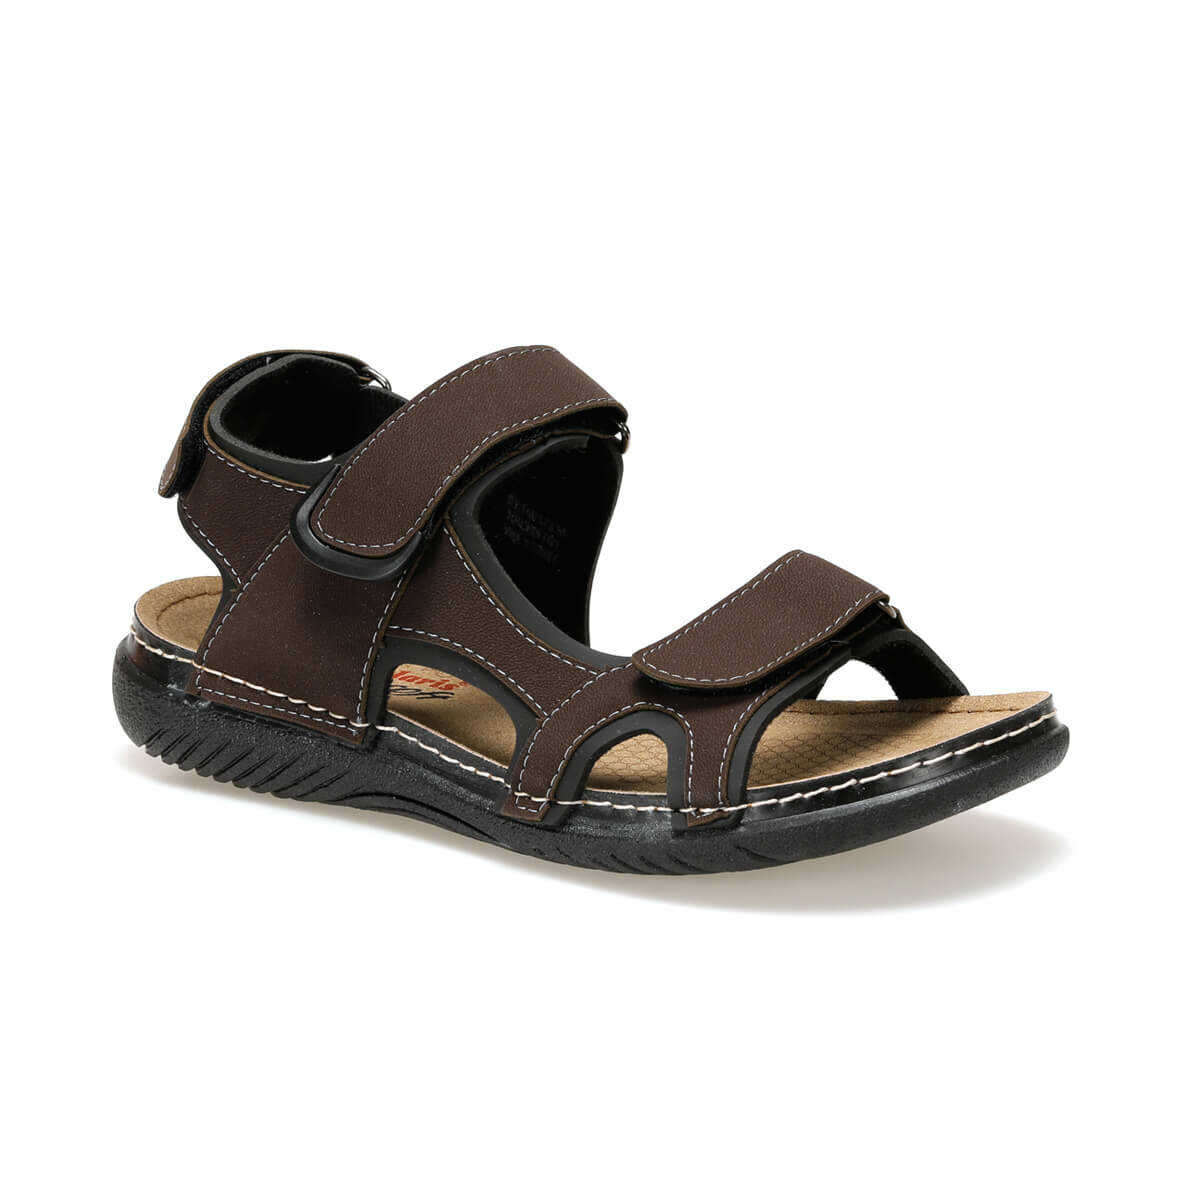 FLO 91. 150579.M Black Male Sandals Polaris